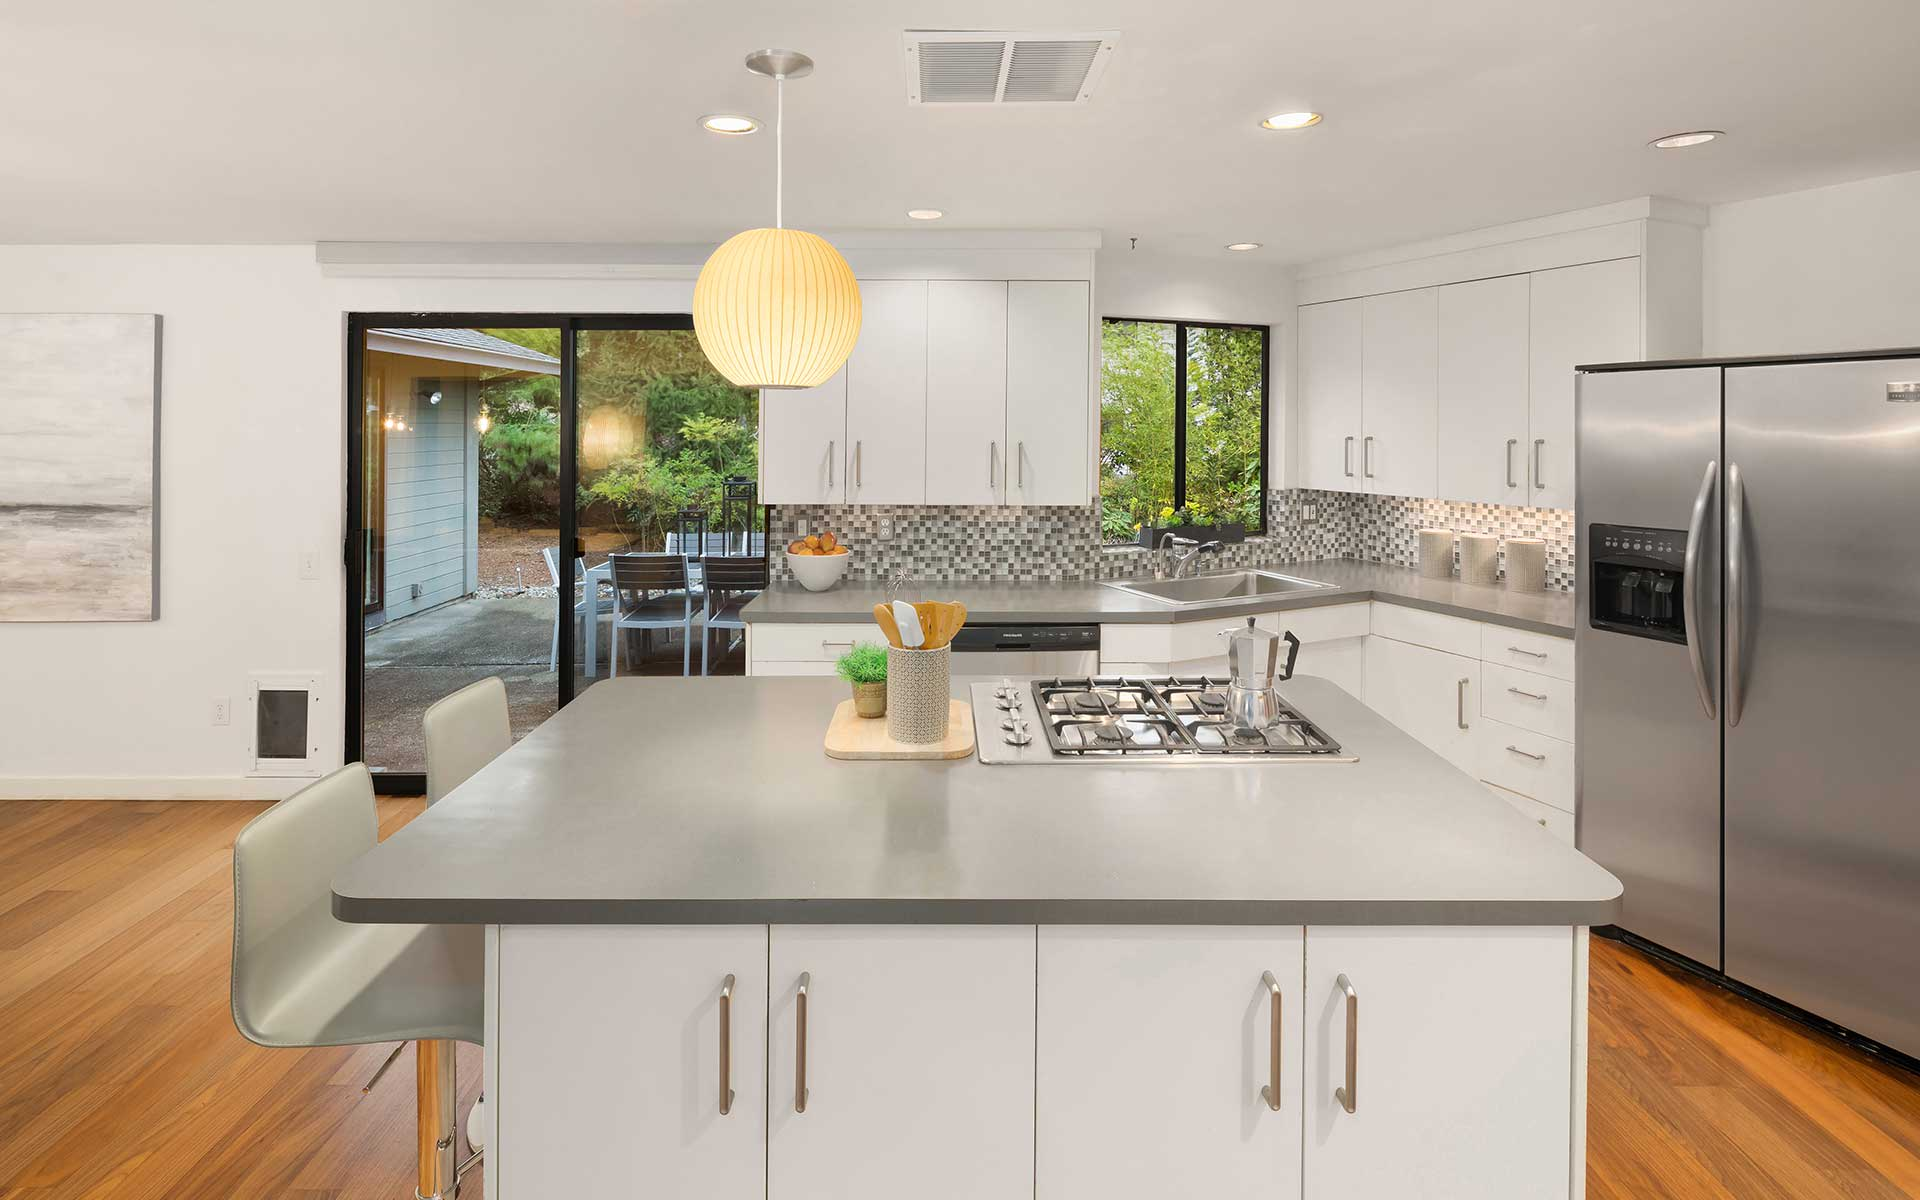 Stylish Mid-Century with a Clean, Modern Aesthetic  photo